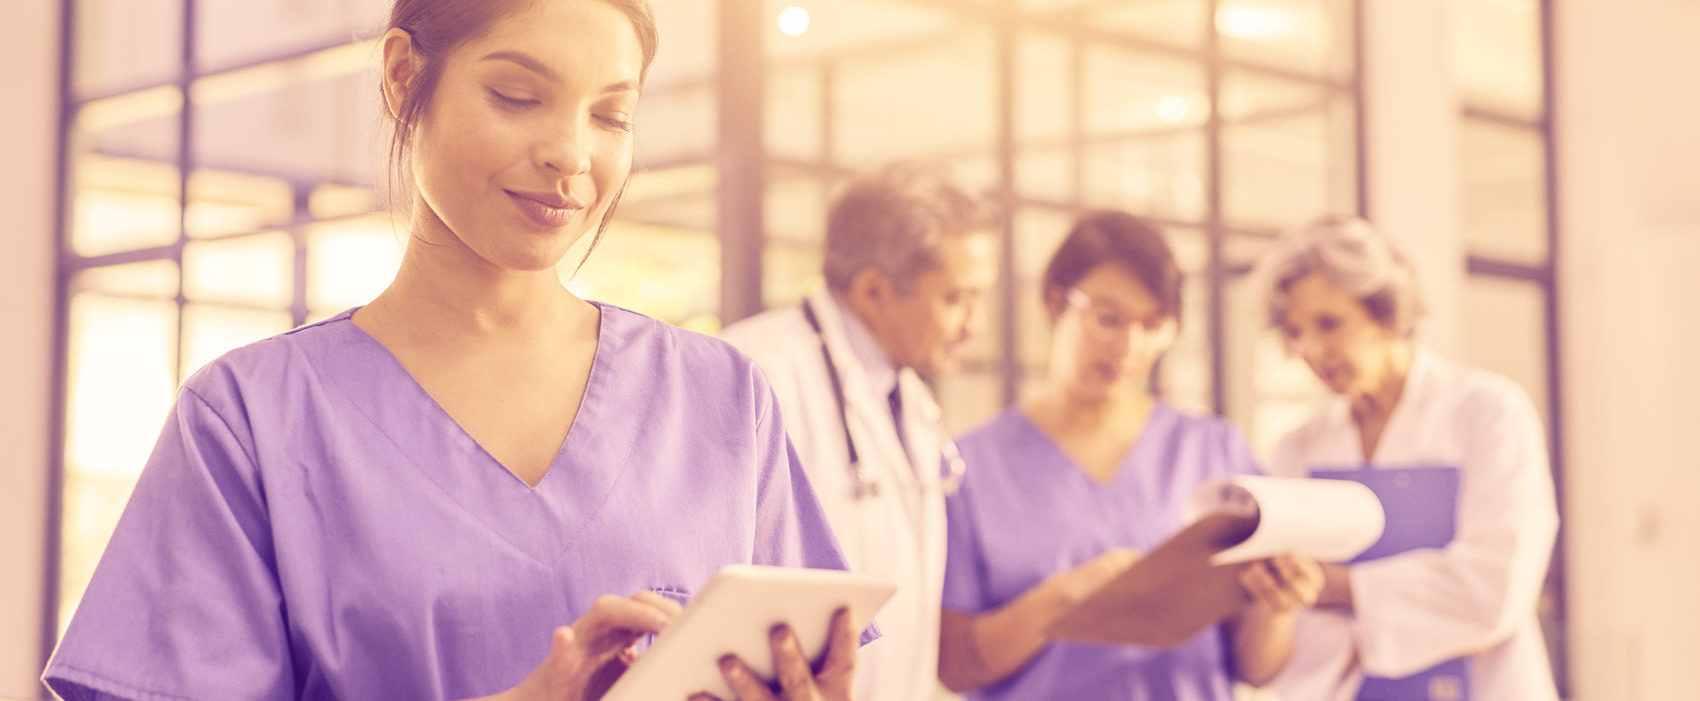 Medical professionals on mobile device